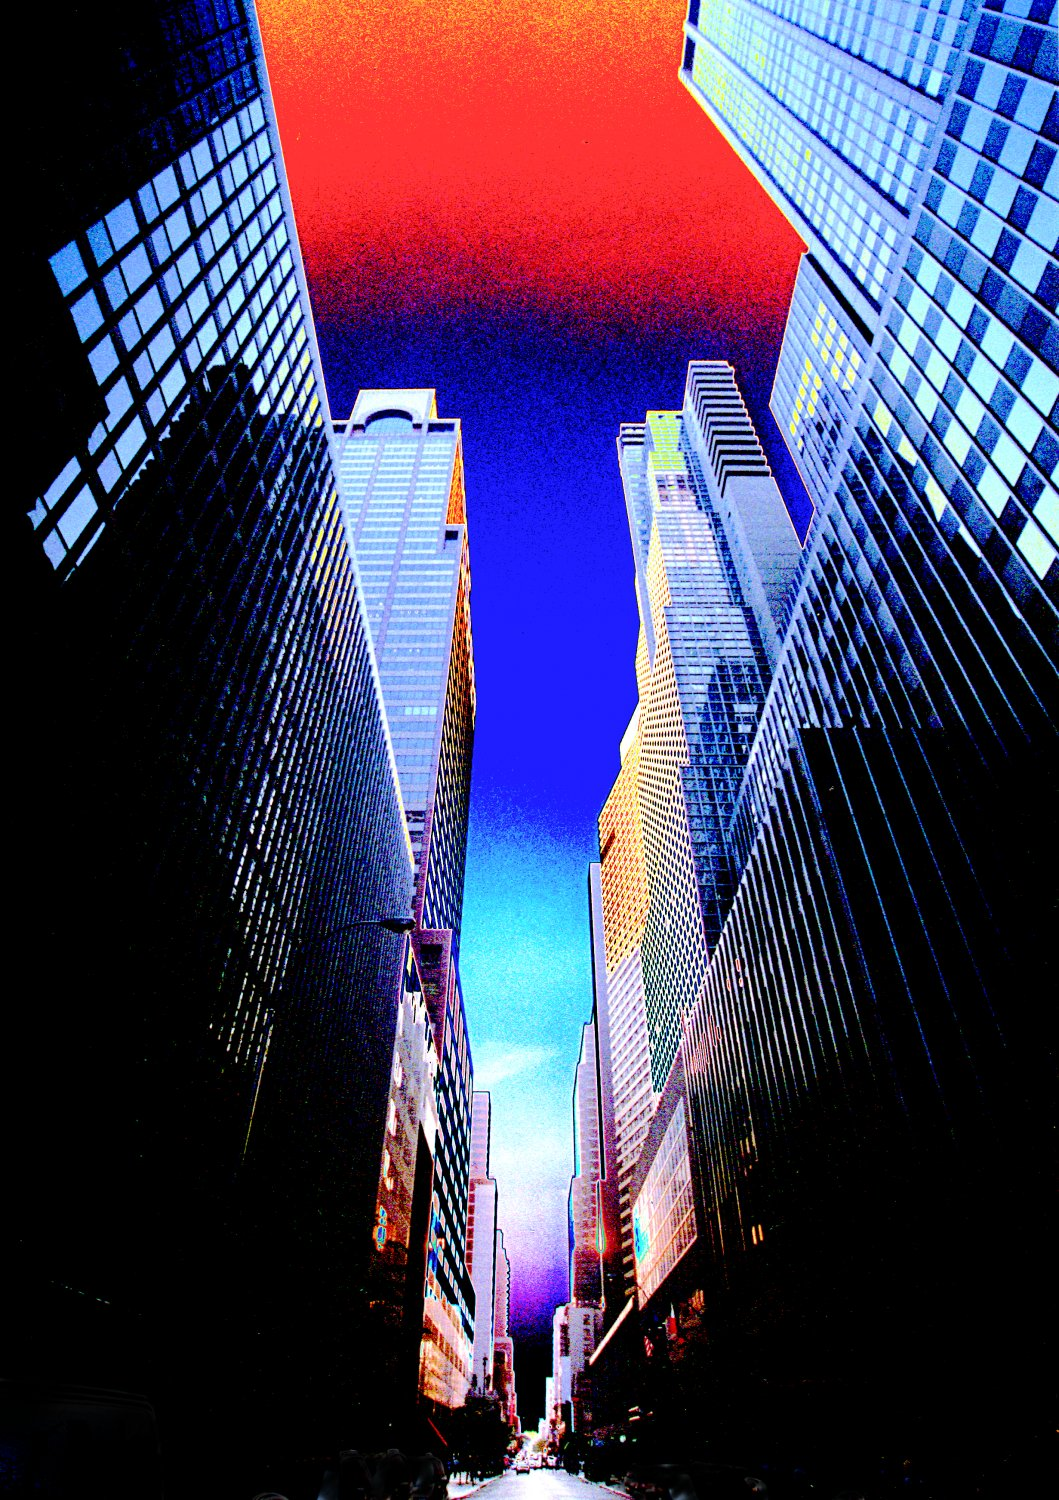 - Manhattan canyon - Techno-Impressionist Museum - Techno-Impressionism - art - beautiful - photo photography picture - by Tony Karp